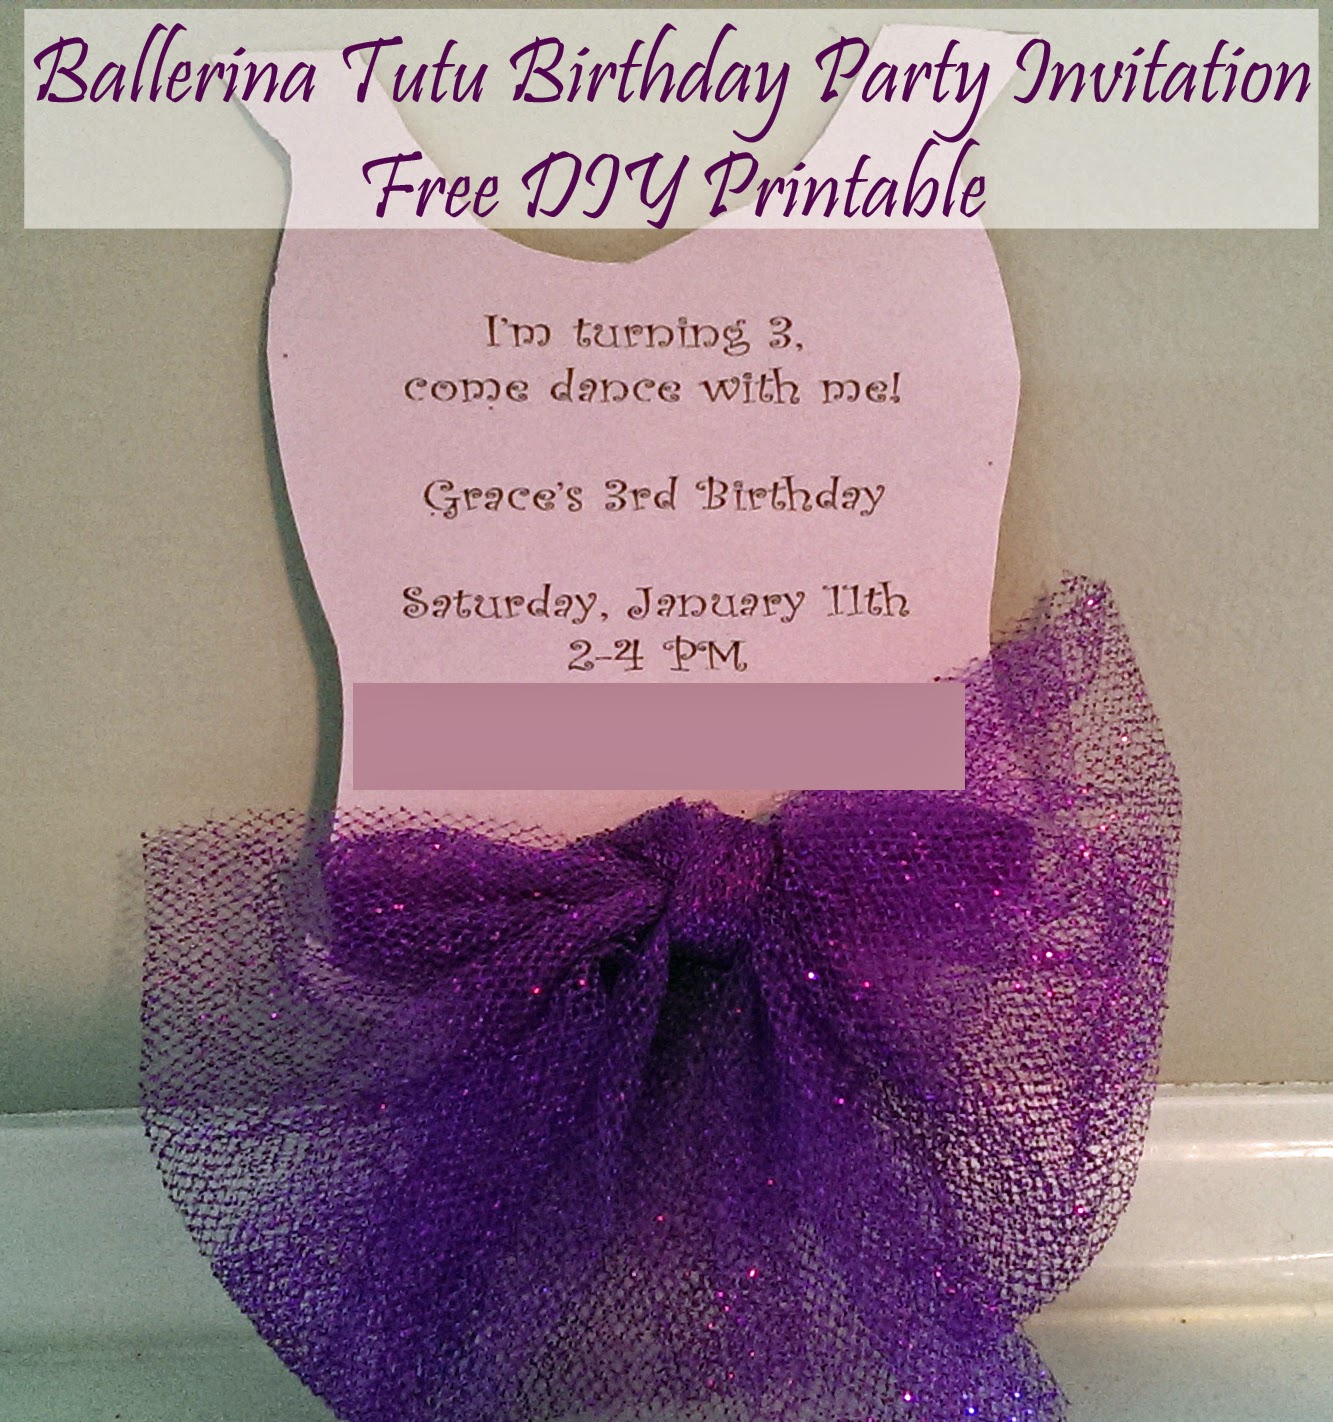 Ballerina Tutu Ballet Birthday Party Invitation Free DIY Printable